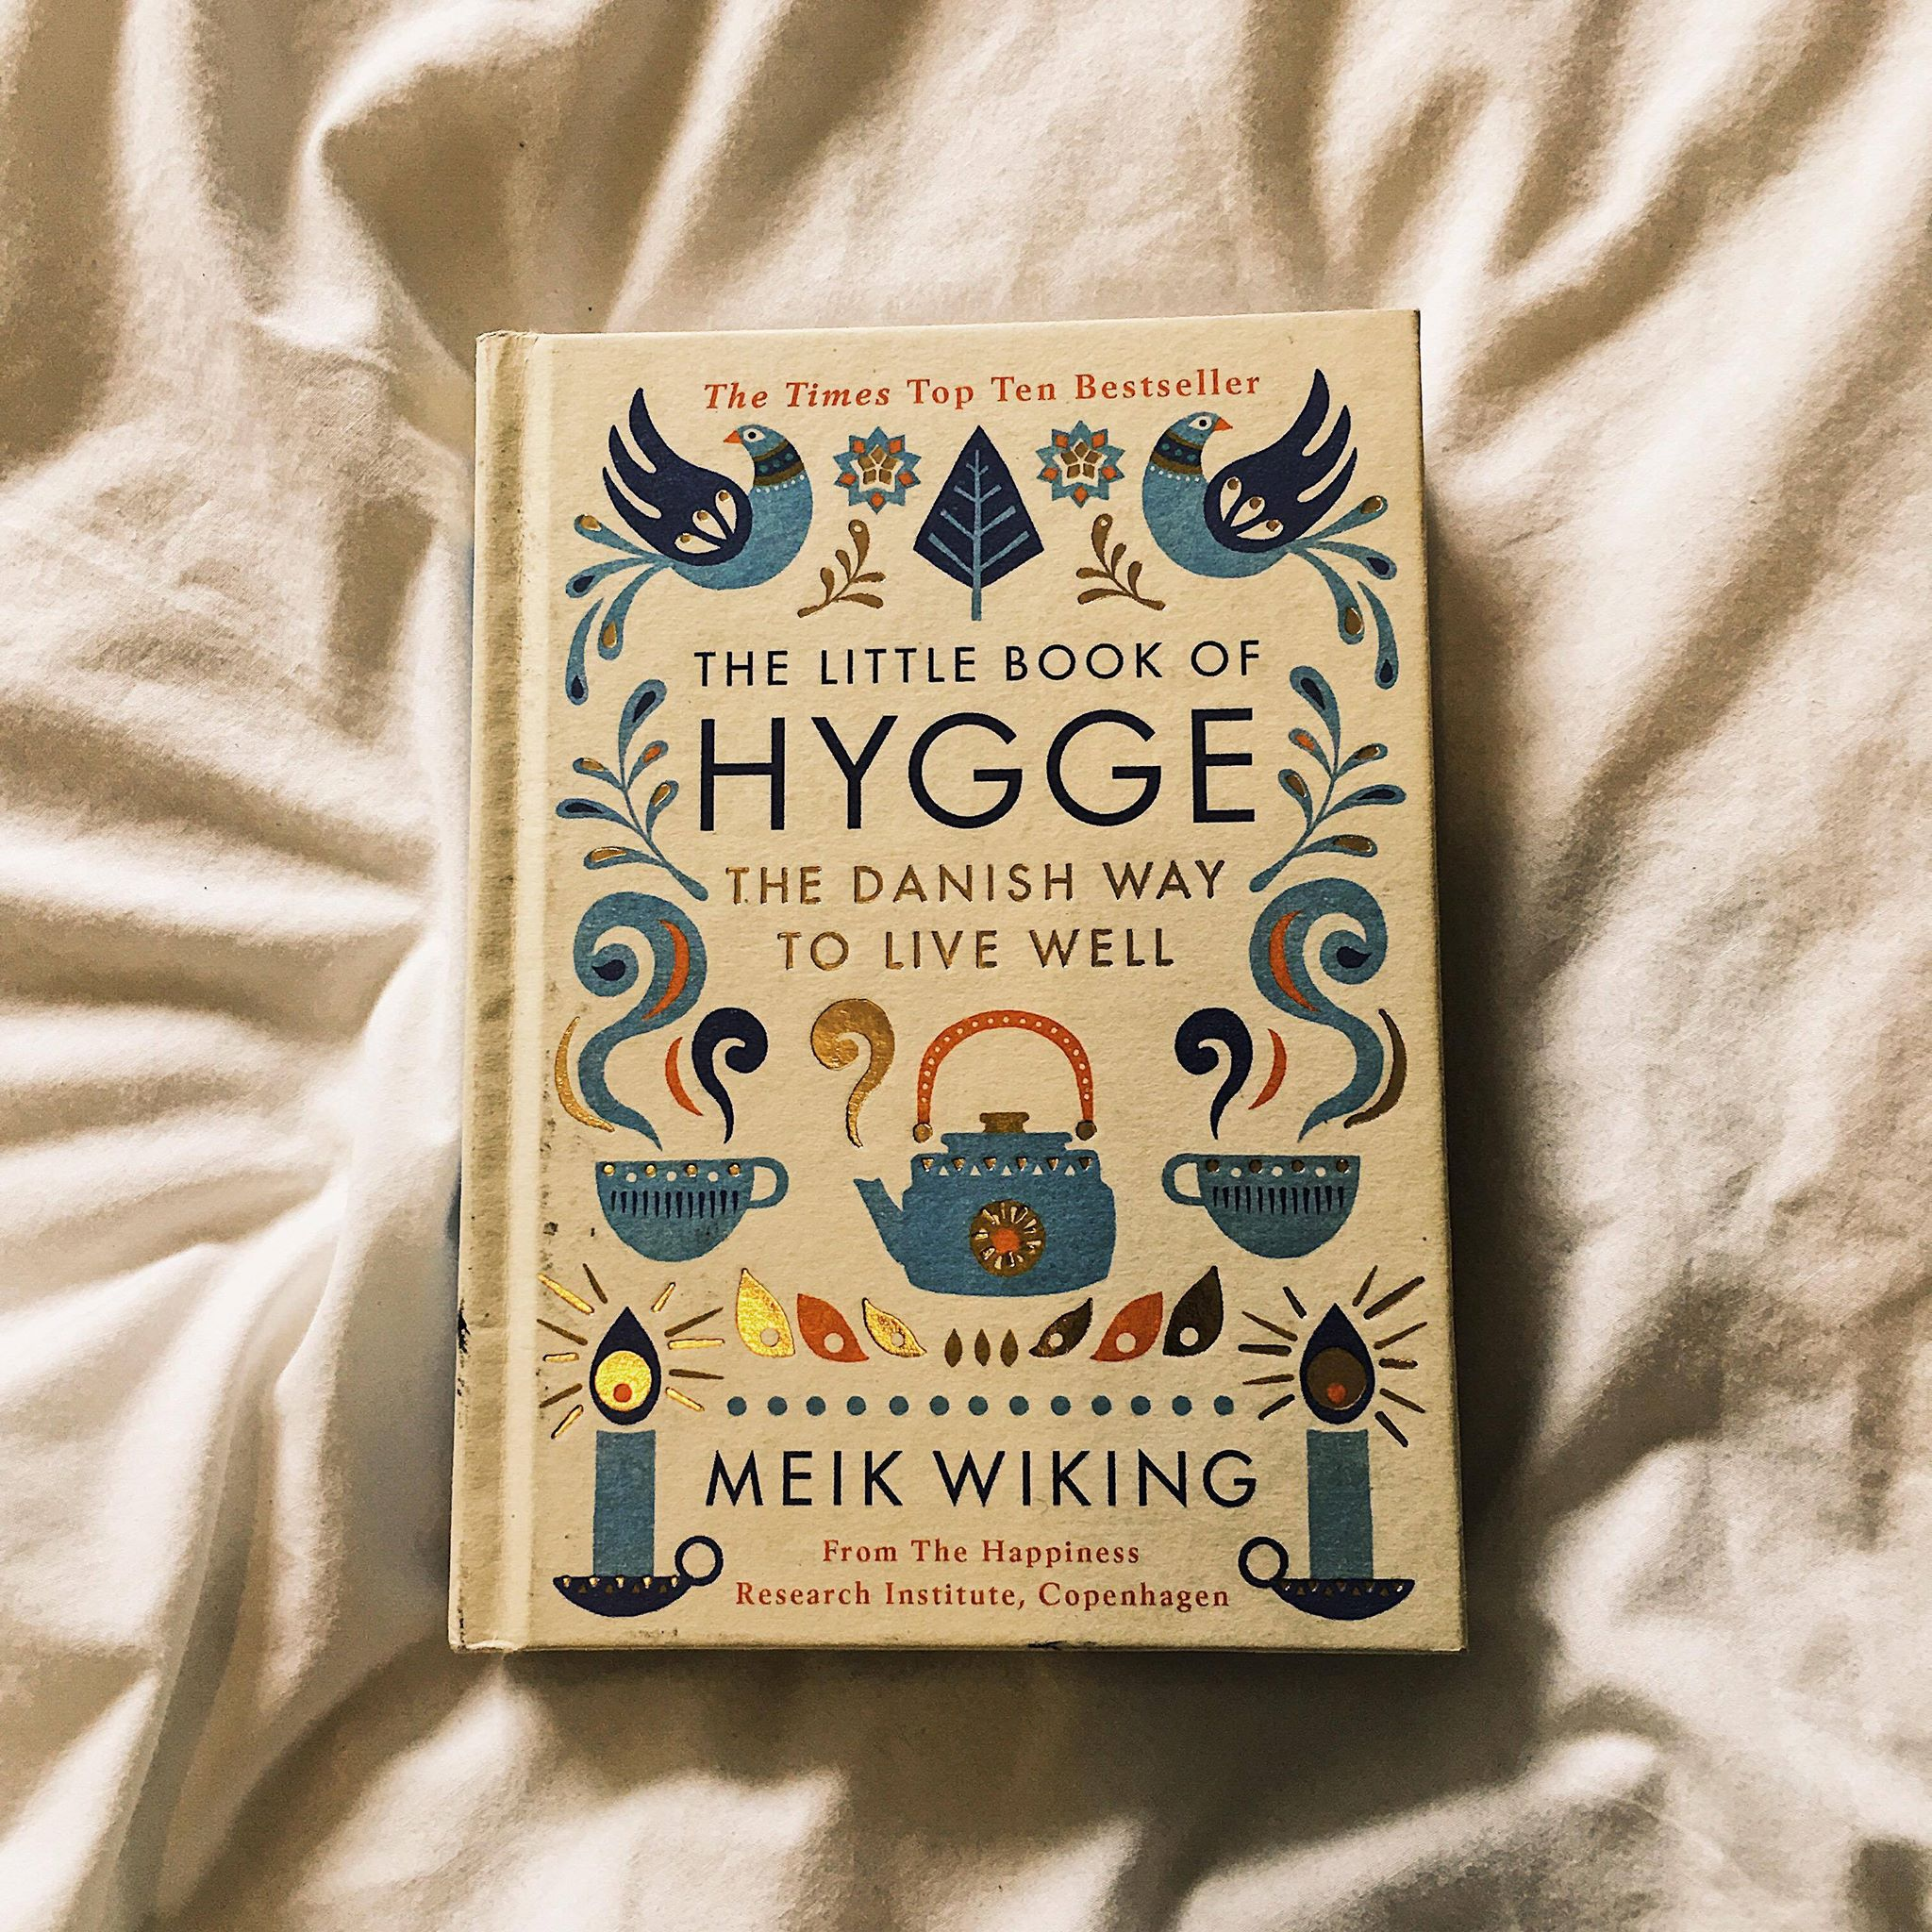 [Review] The Little Book of Hygge by Meik Wiking